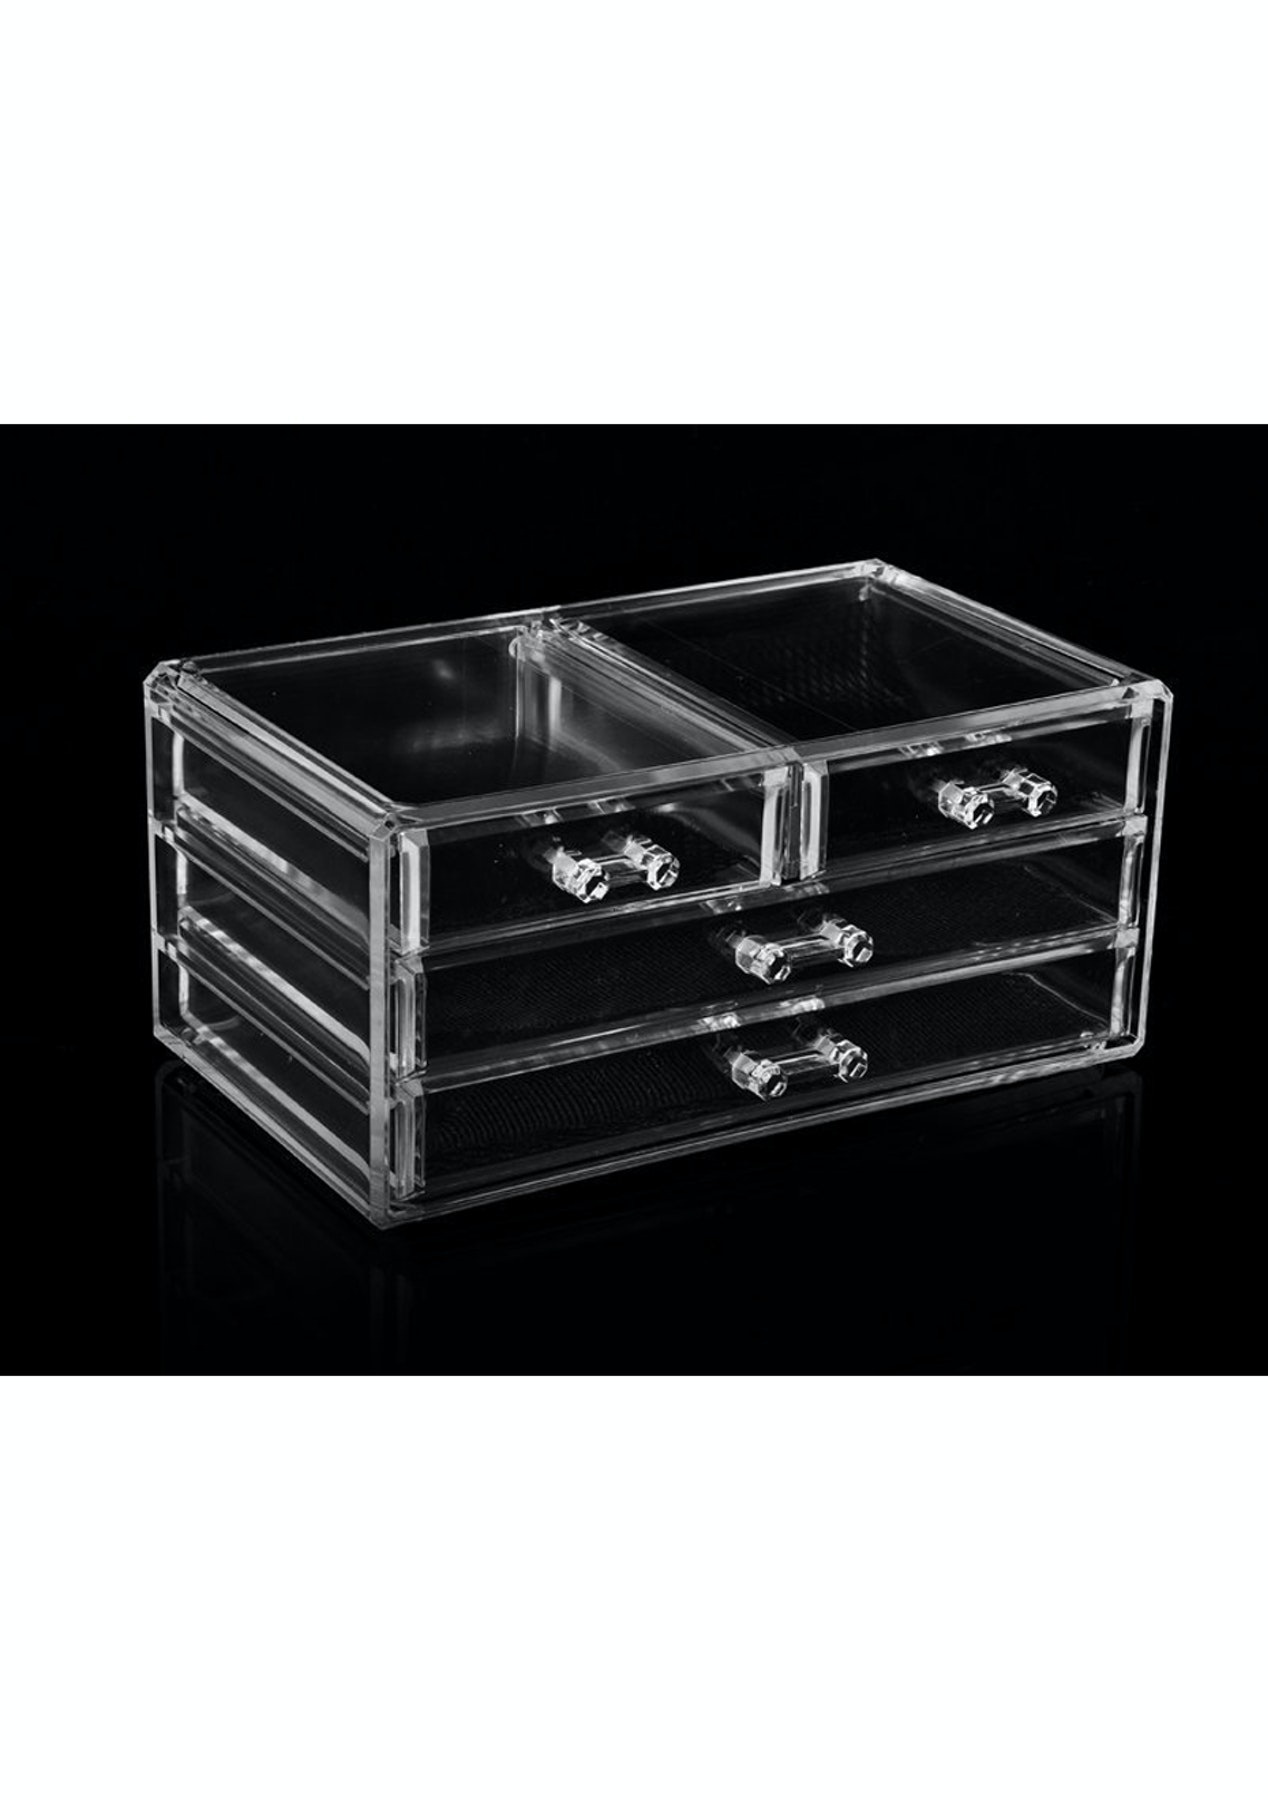 4 Drawer Jewellery Cosmetic Storage Box